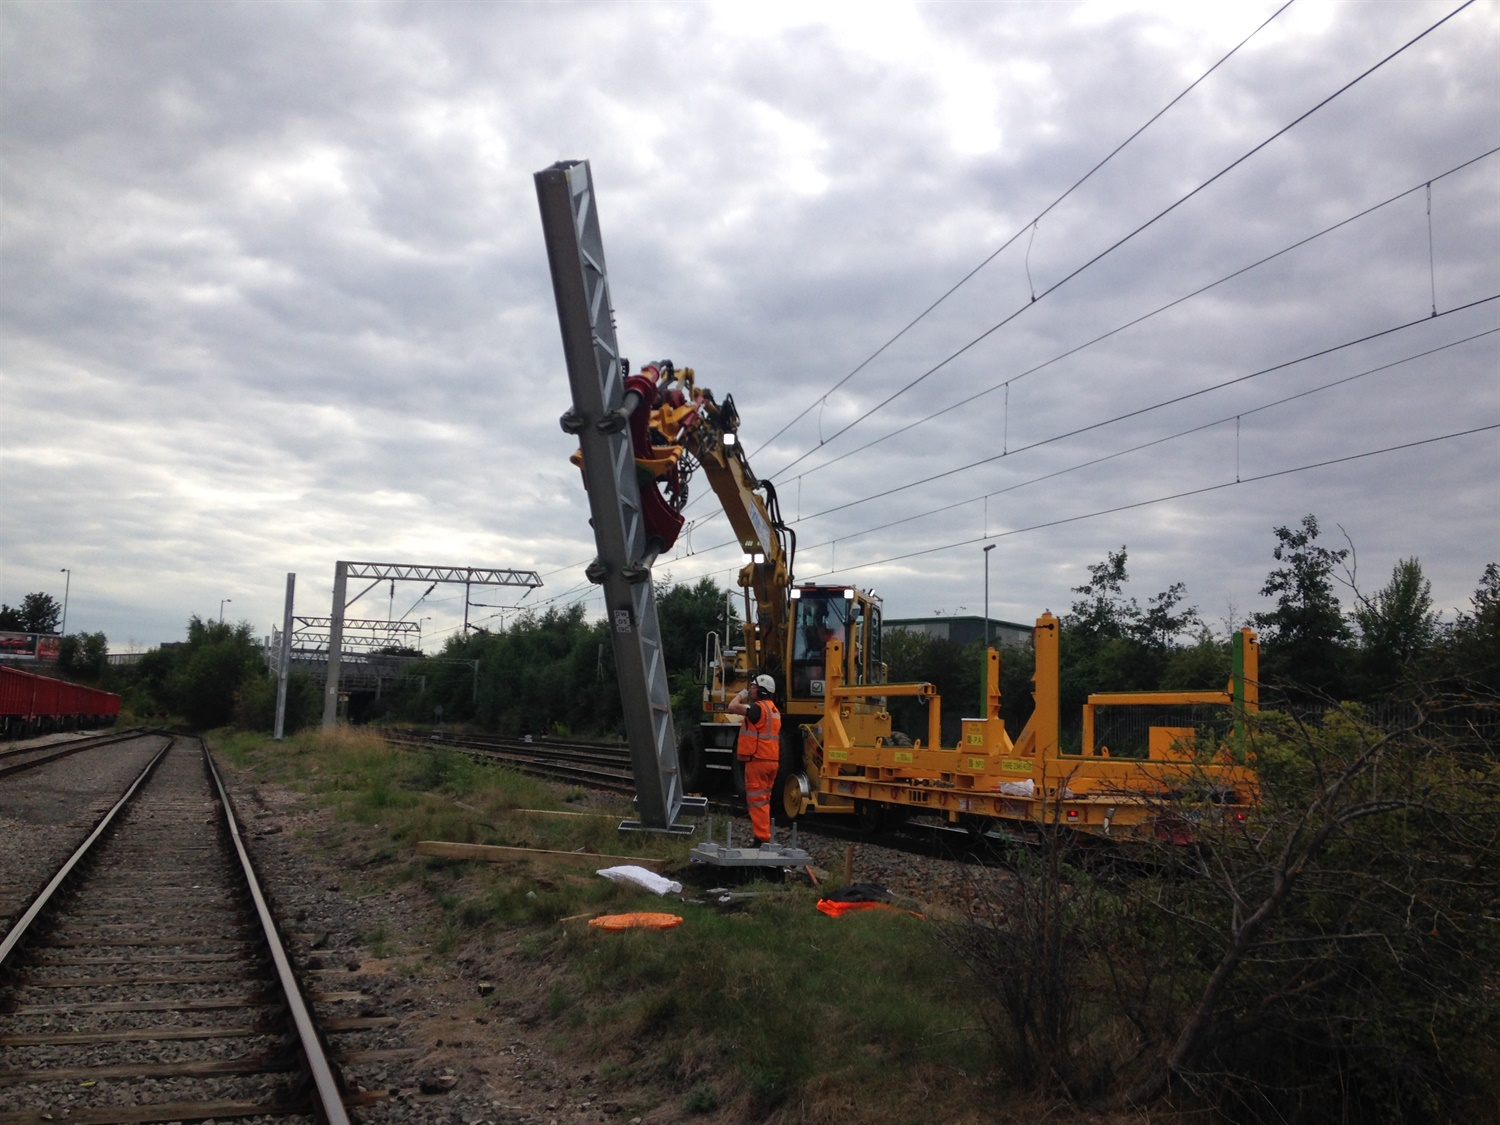 Chase Line electrification moves forward with steel structure installation